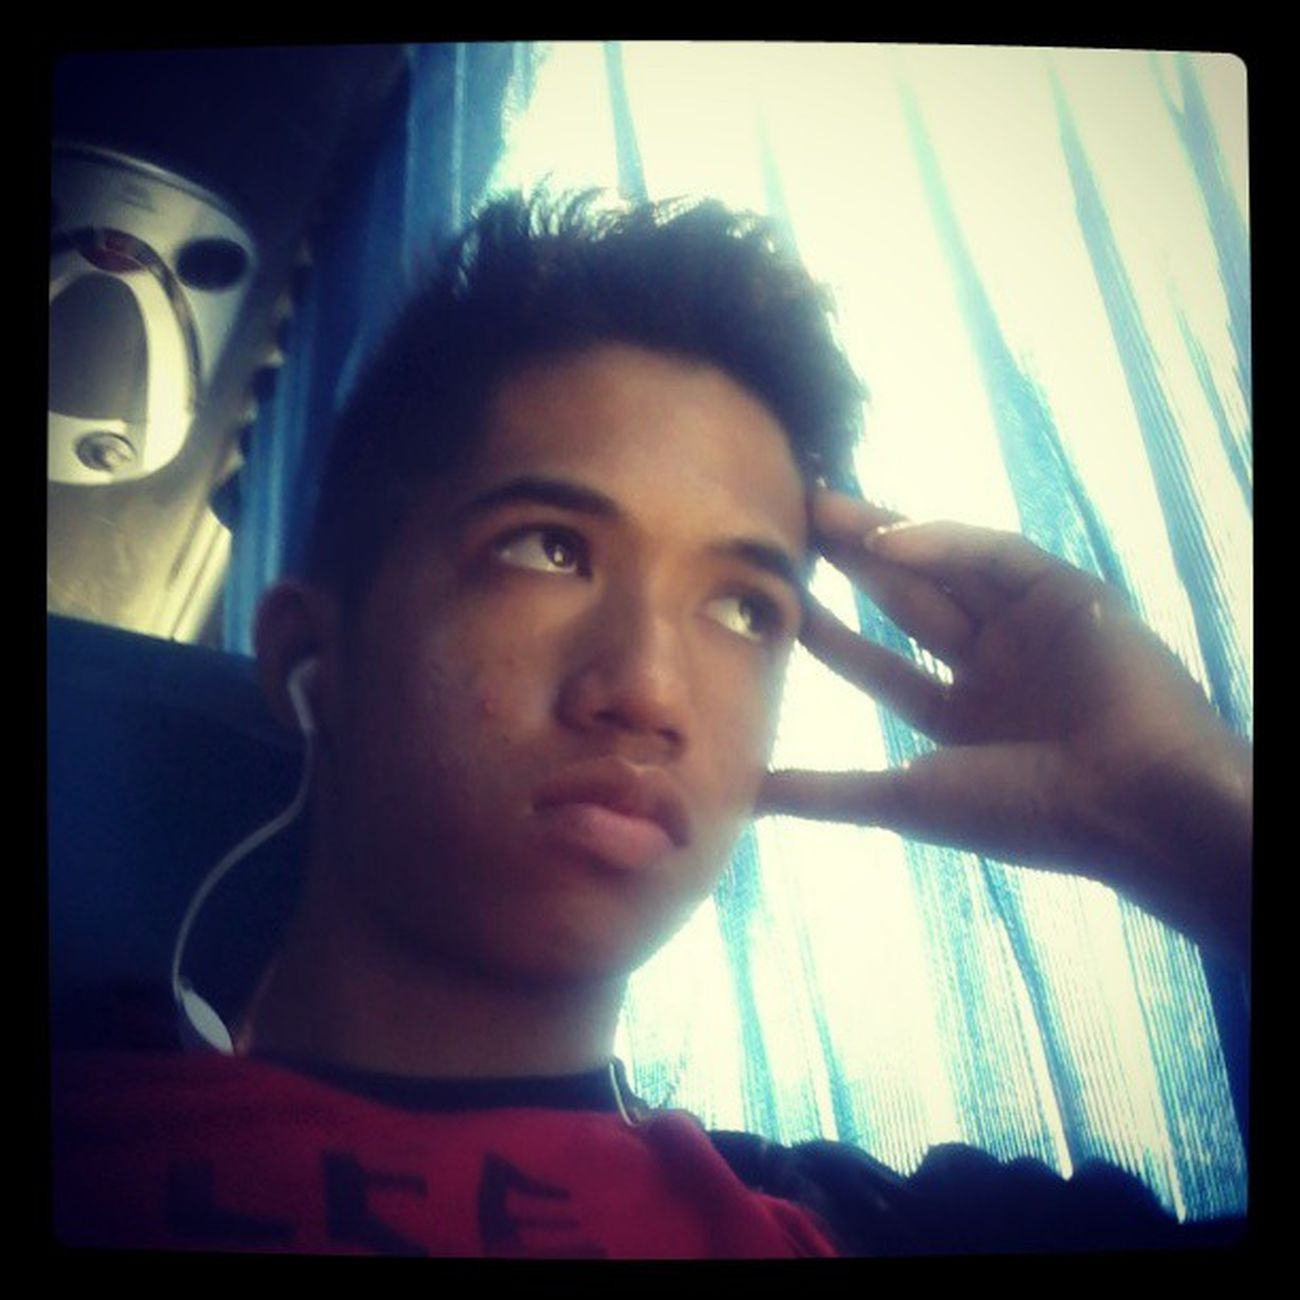 vain2 nlang ta ani way mabuhat.. 3hoursontheroad Vanity fair HappybirthdayGaGa !!!